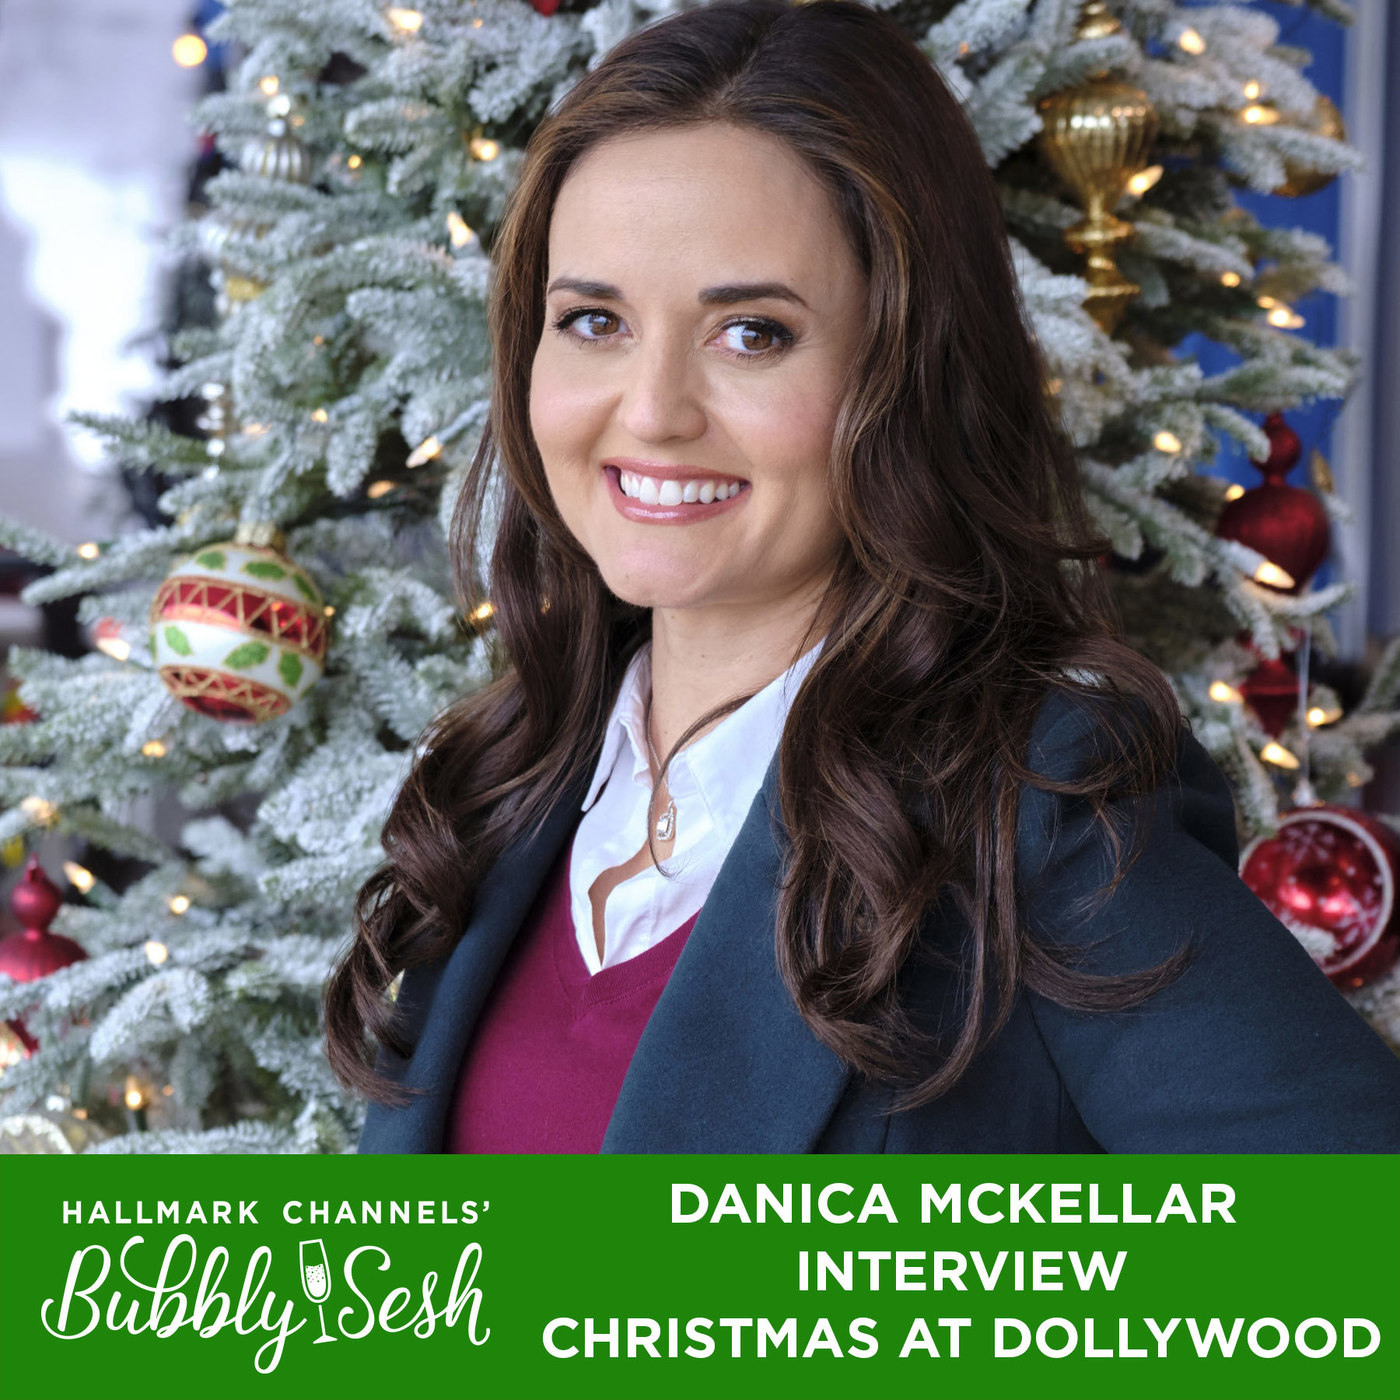 Danica McKellar Interview, Christmas At Dollywood